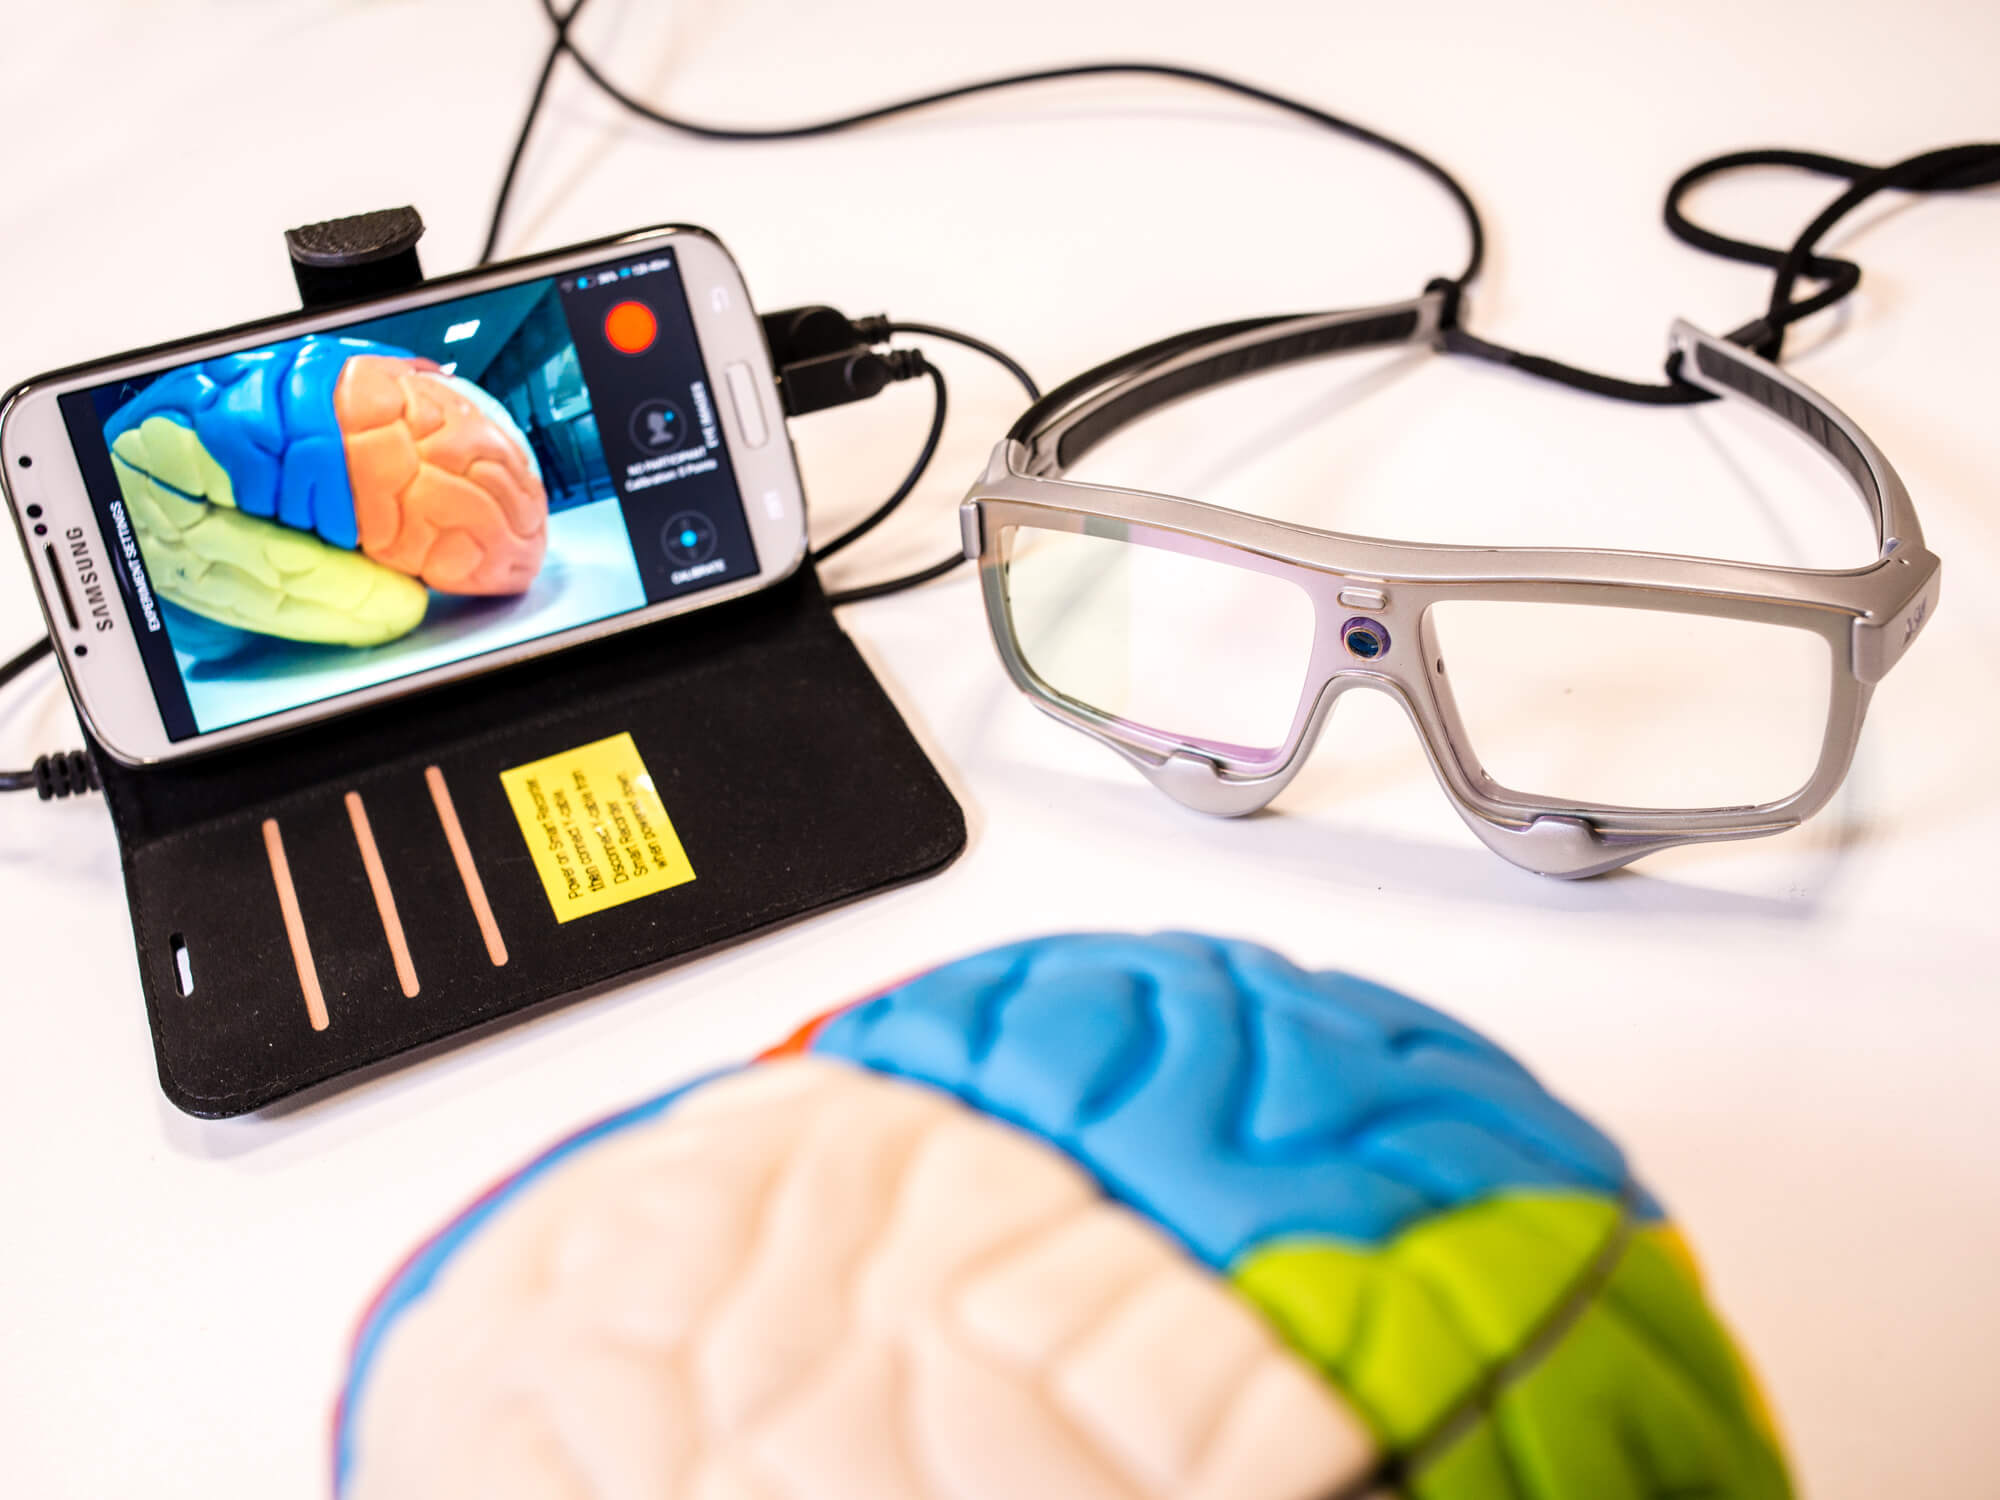 Mobile phone connected to glasses with camera recording a model brain